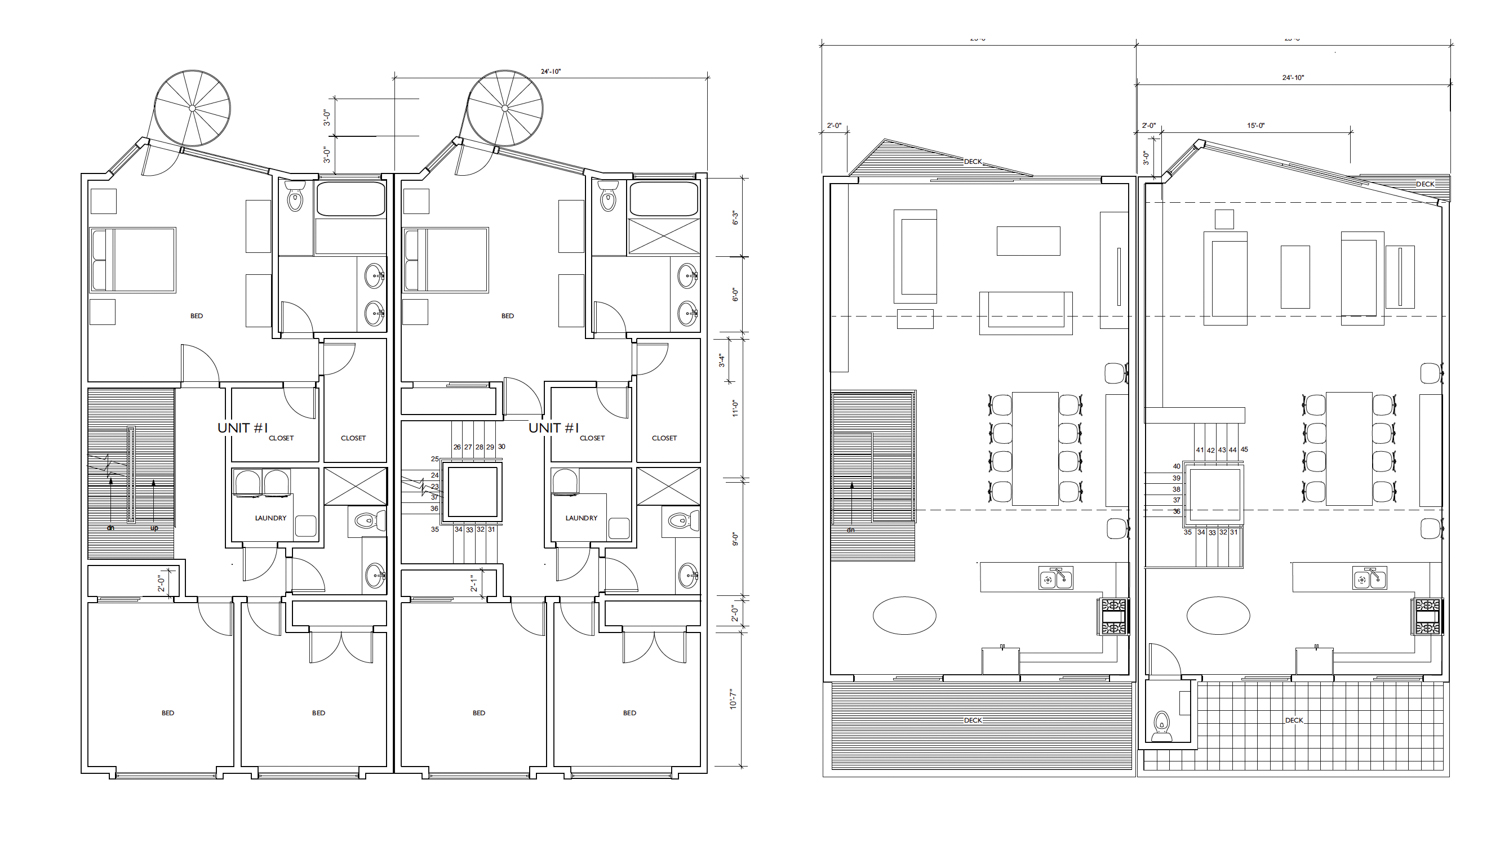 4034 20th Street proposed floor plan, via Harris Architects